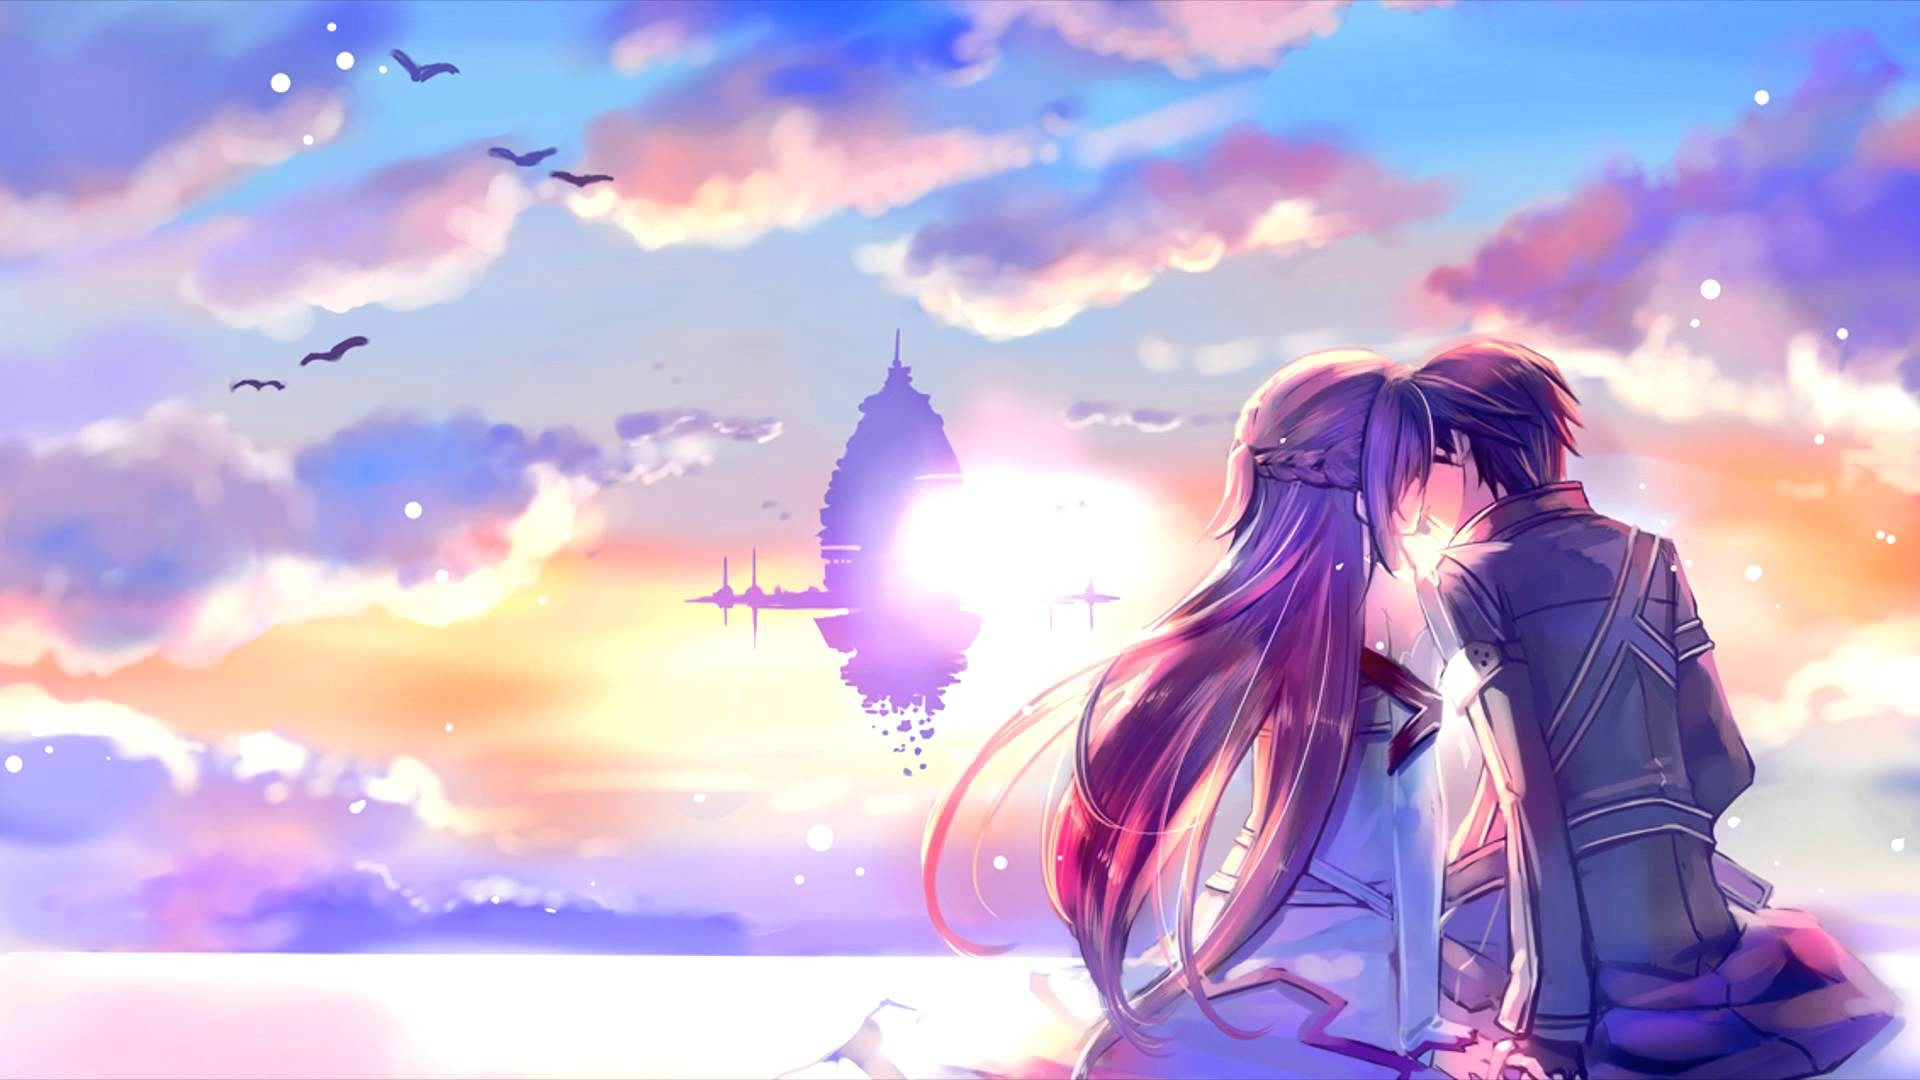 1920x1080 Romantic Asuna And Kirito Sword Art Online Wallpaper 2815